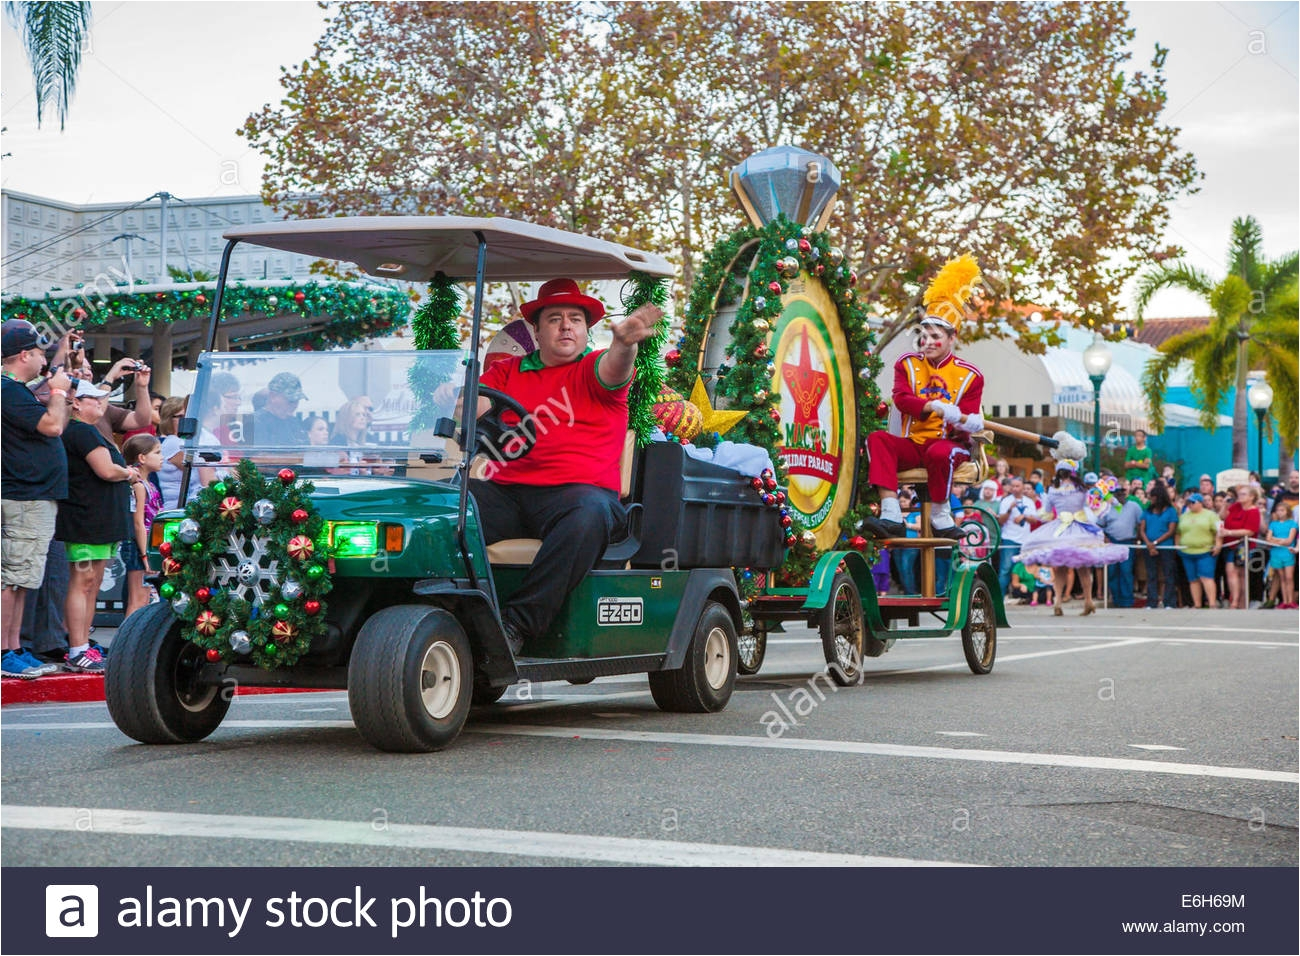 man driving decorated golf cart pulling large bass drum in macy s holiday parade at universal studios